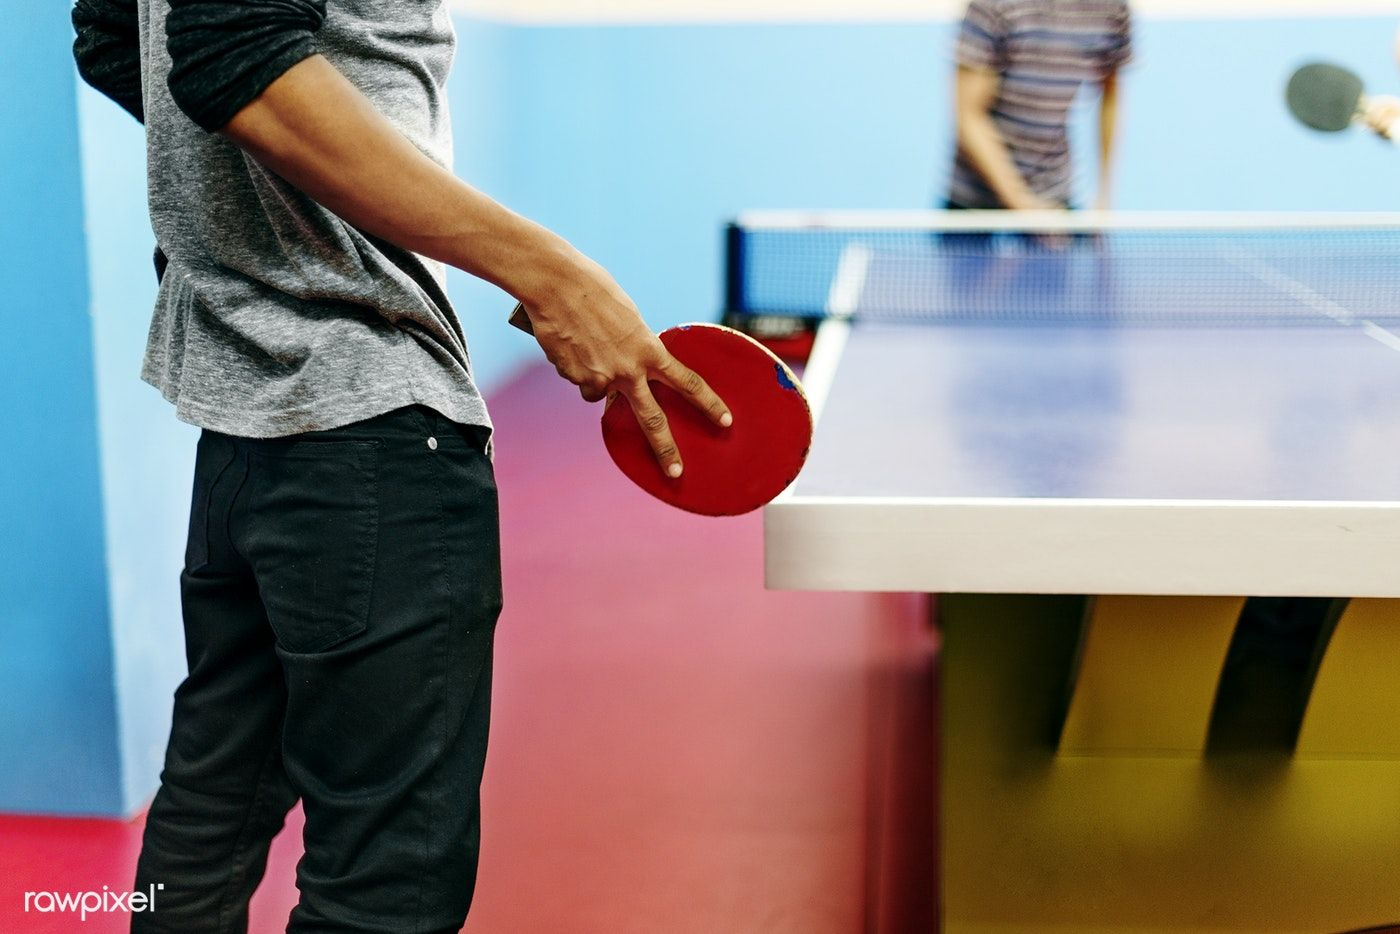 Download premium image of Friends playing table tennis 49495